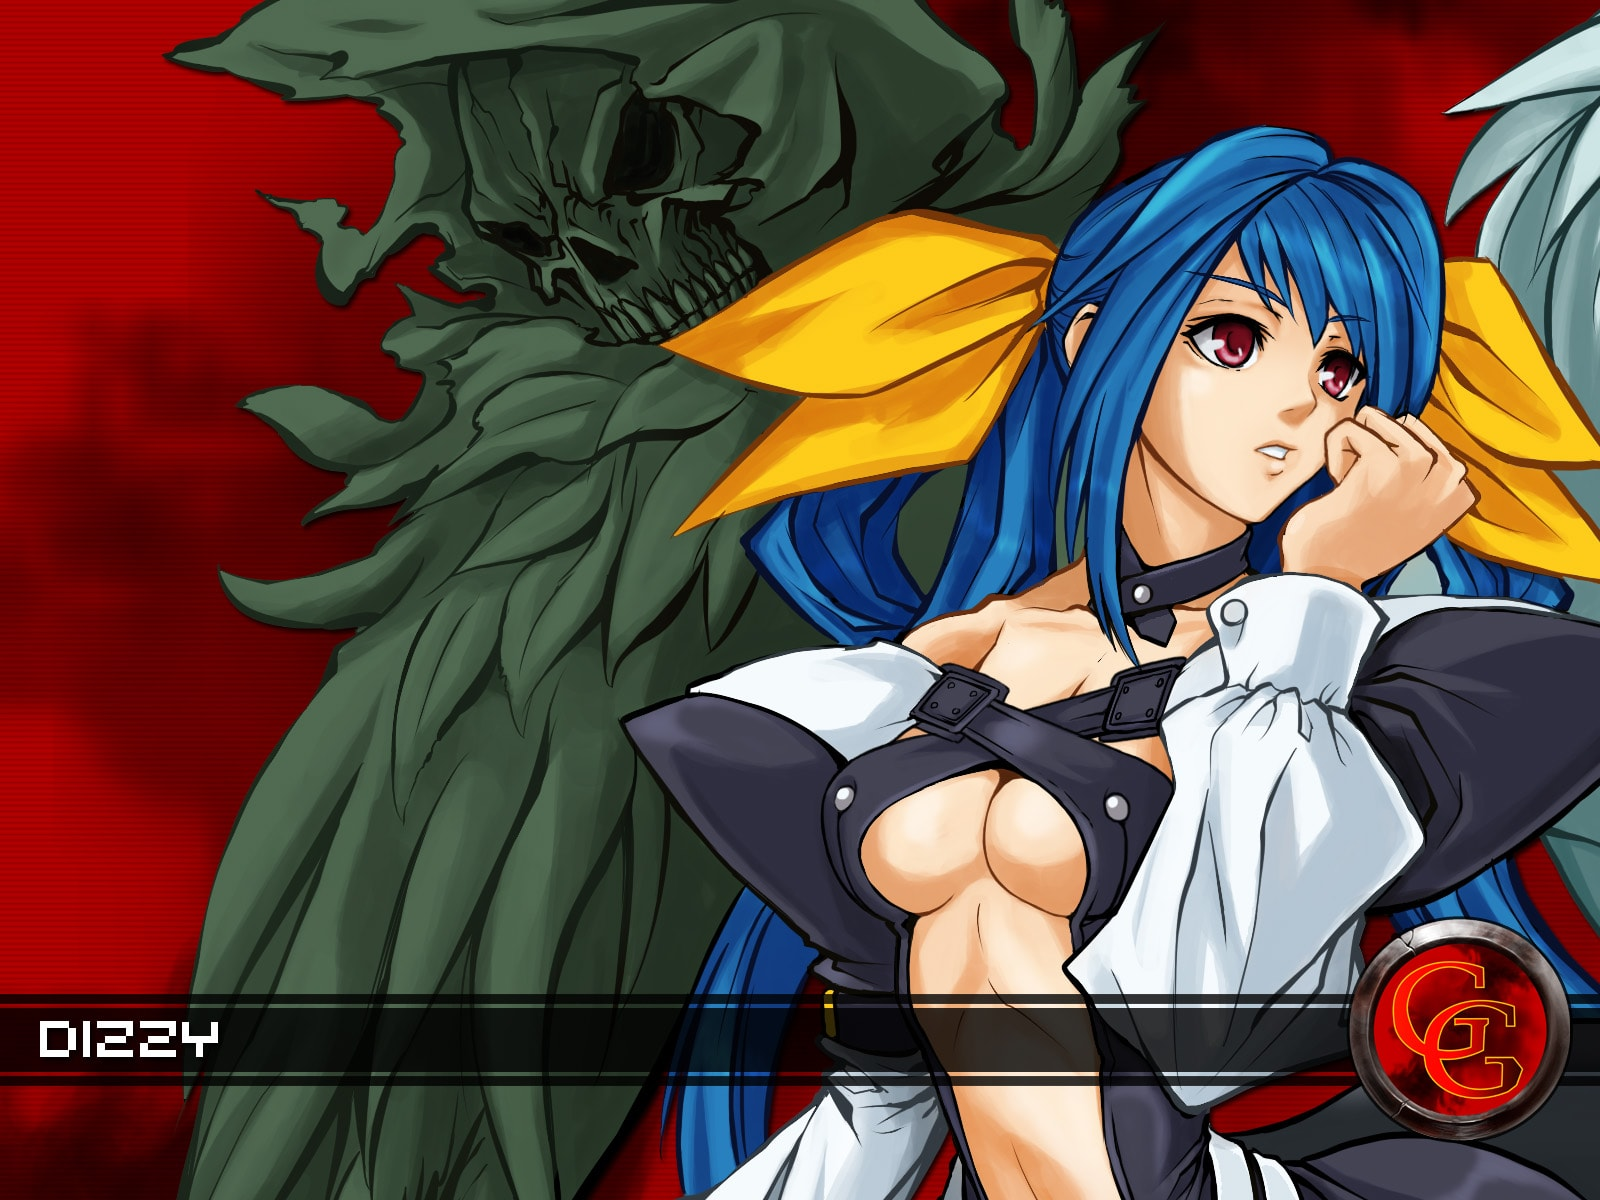 Guilty Gear: Dizzy Pictures